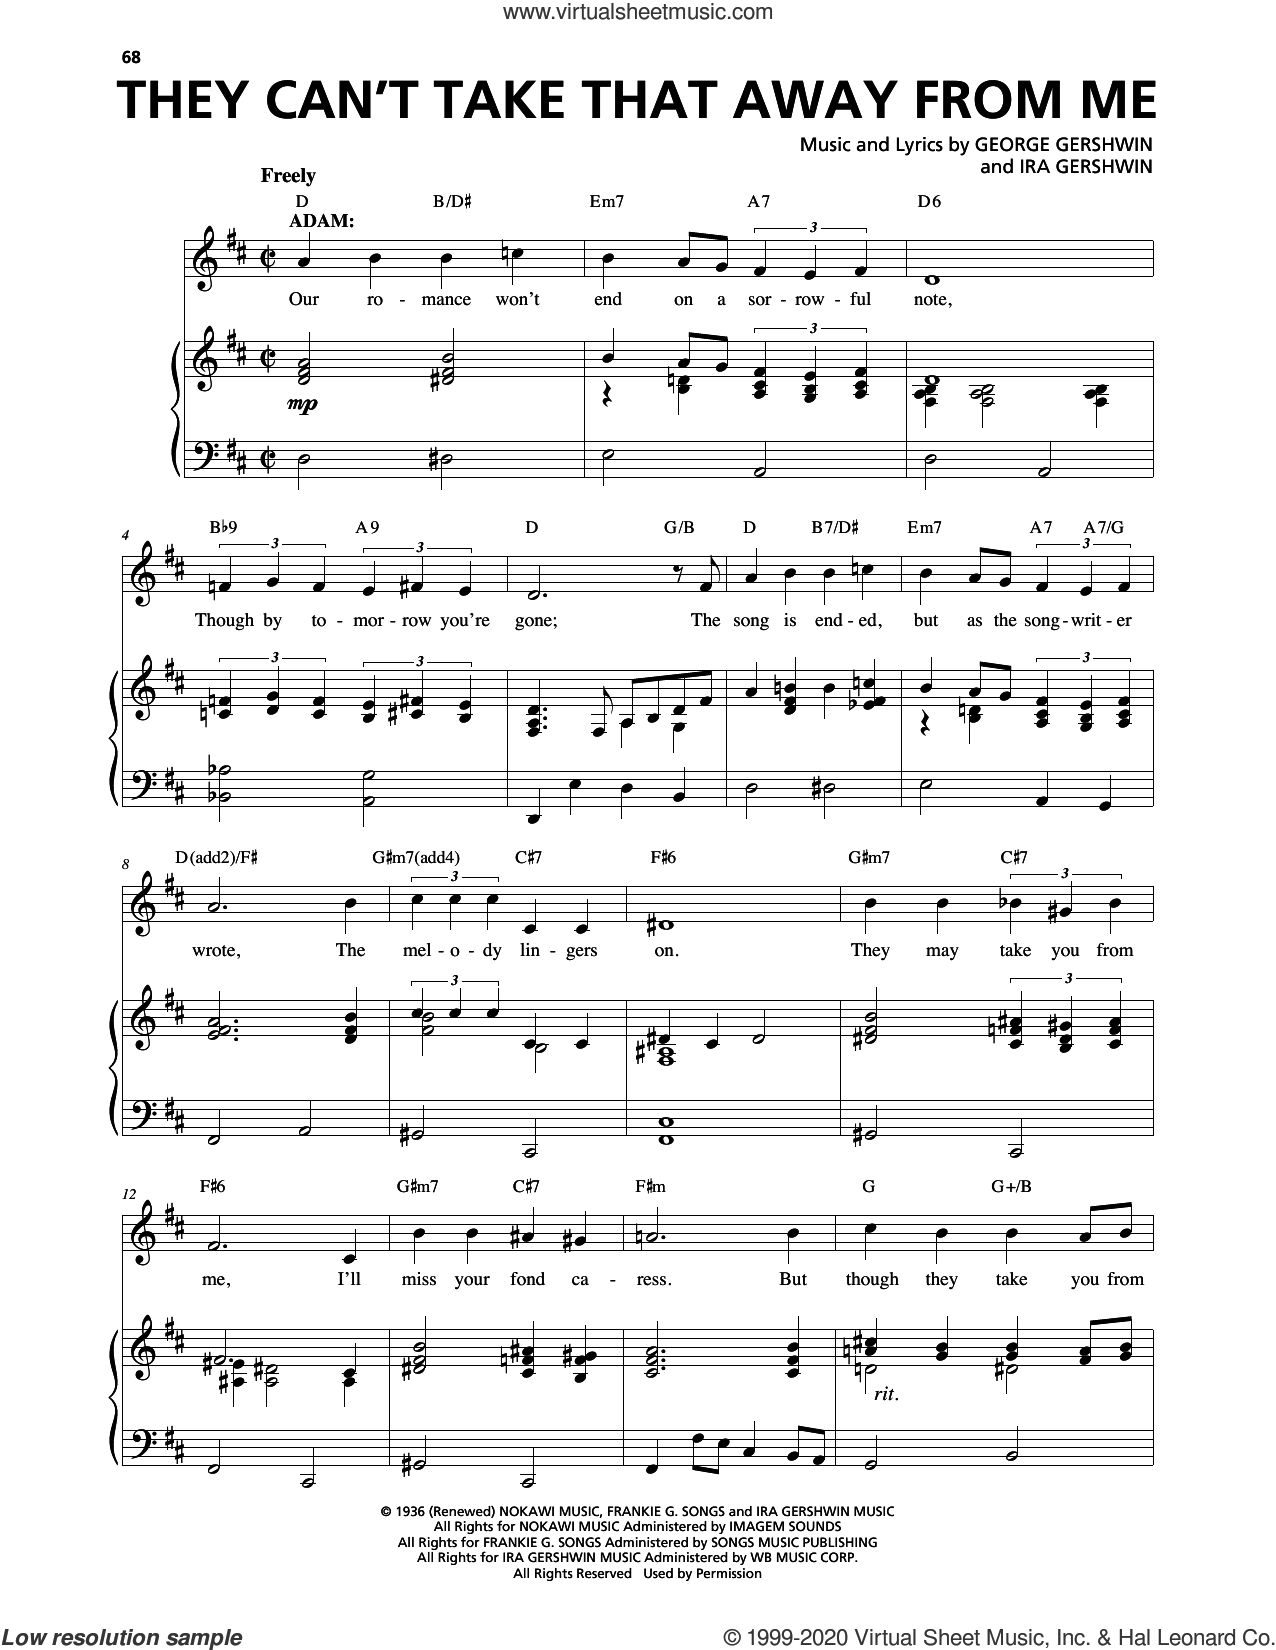 They Can't Take That Away From Me (from An American In Paris) sheet music for voice and piano by George Gershwin, George Gershwin & Ira Gershwin and Ira Gershwin, intermediate skill level